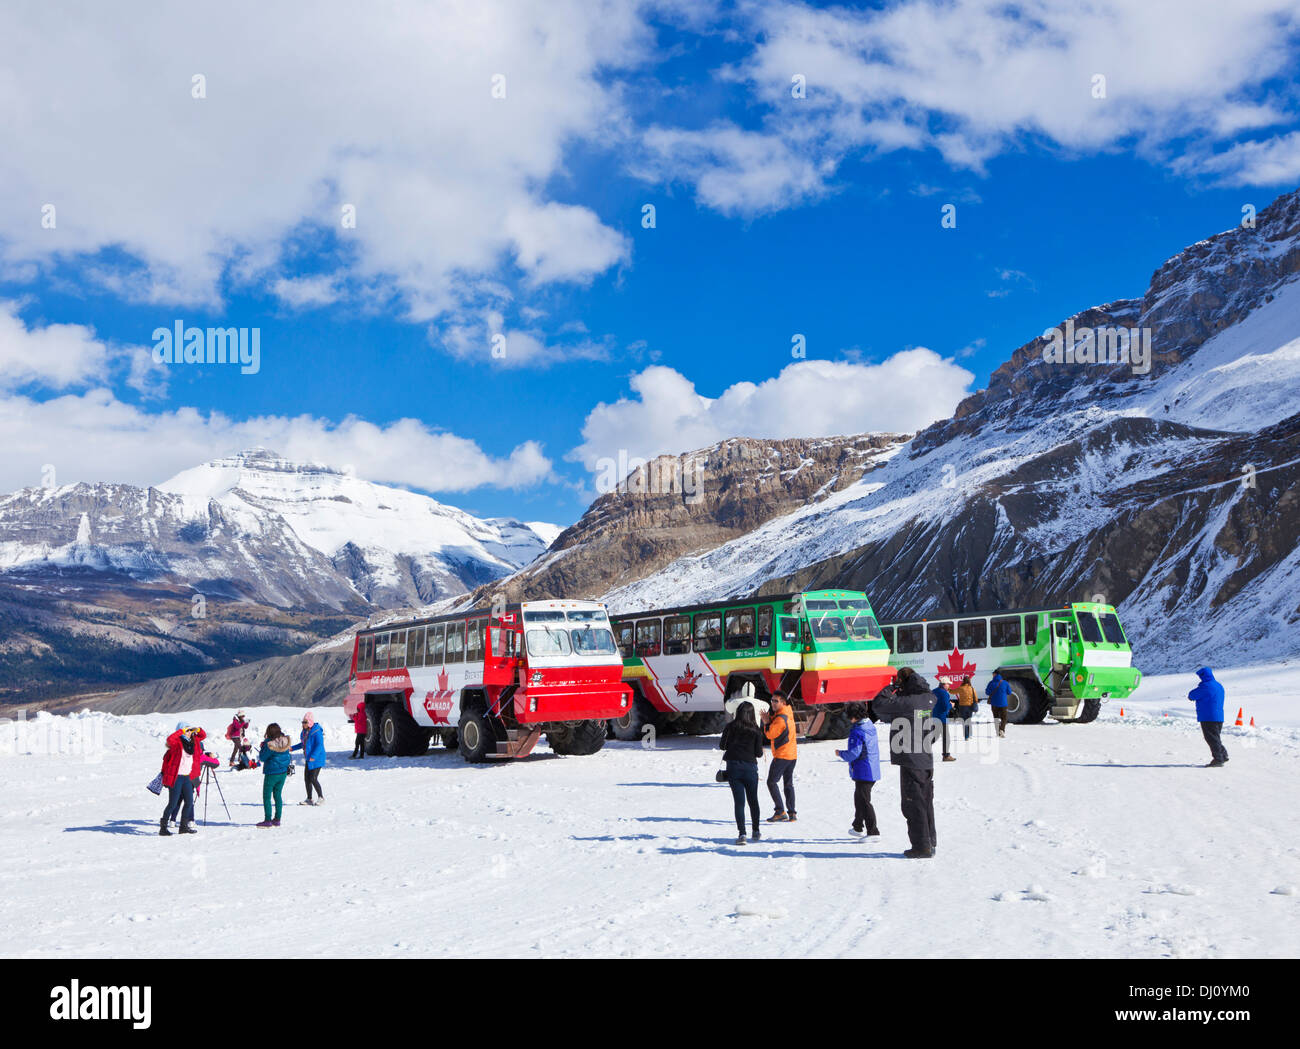 Brewsters Snocoach Ice Explorer Columbia Icefield Athabasca glacier in Jasper National Park Alberta Canada North America - Stock Image